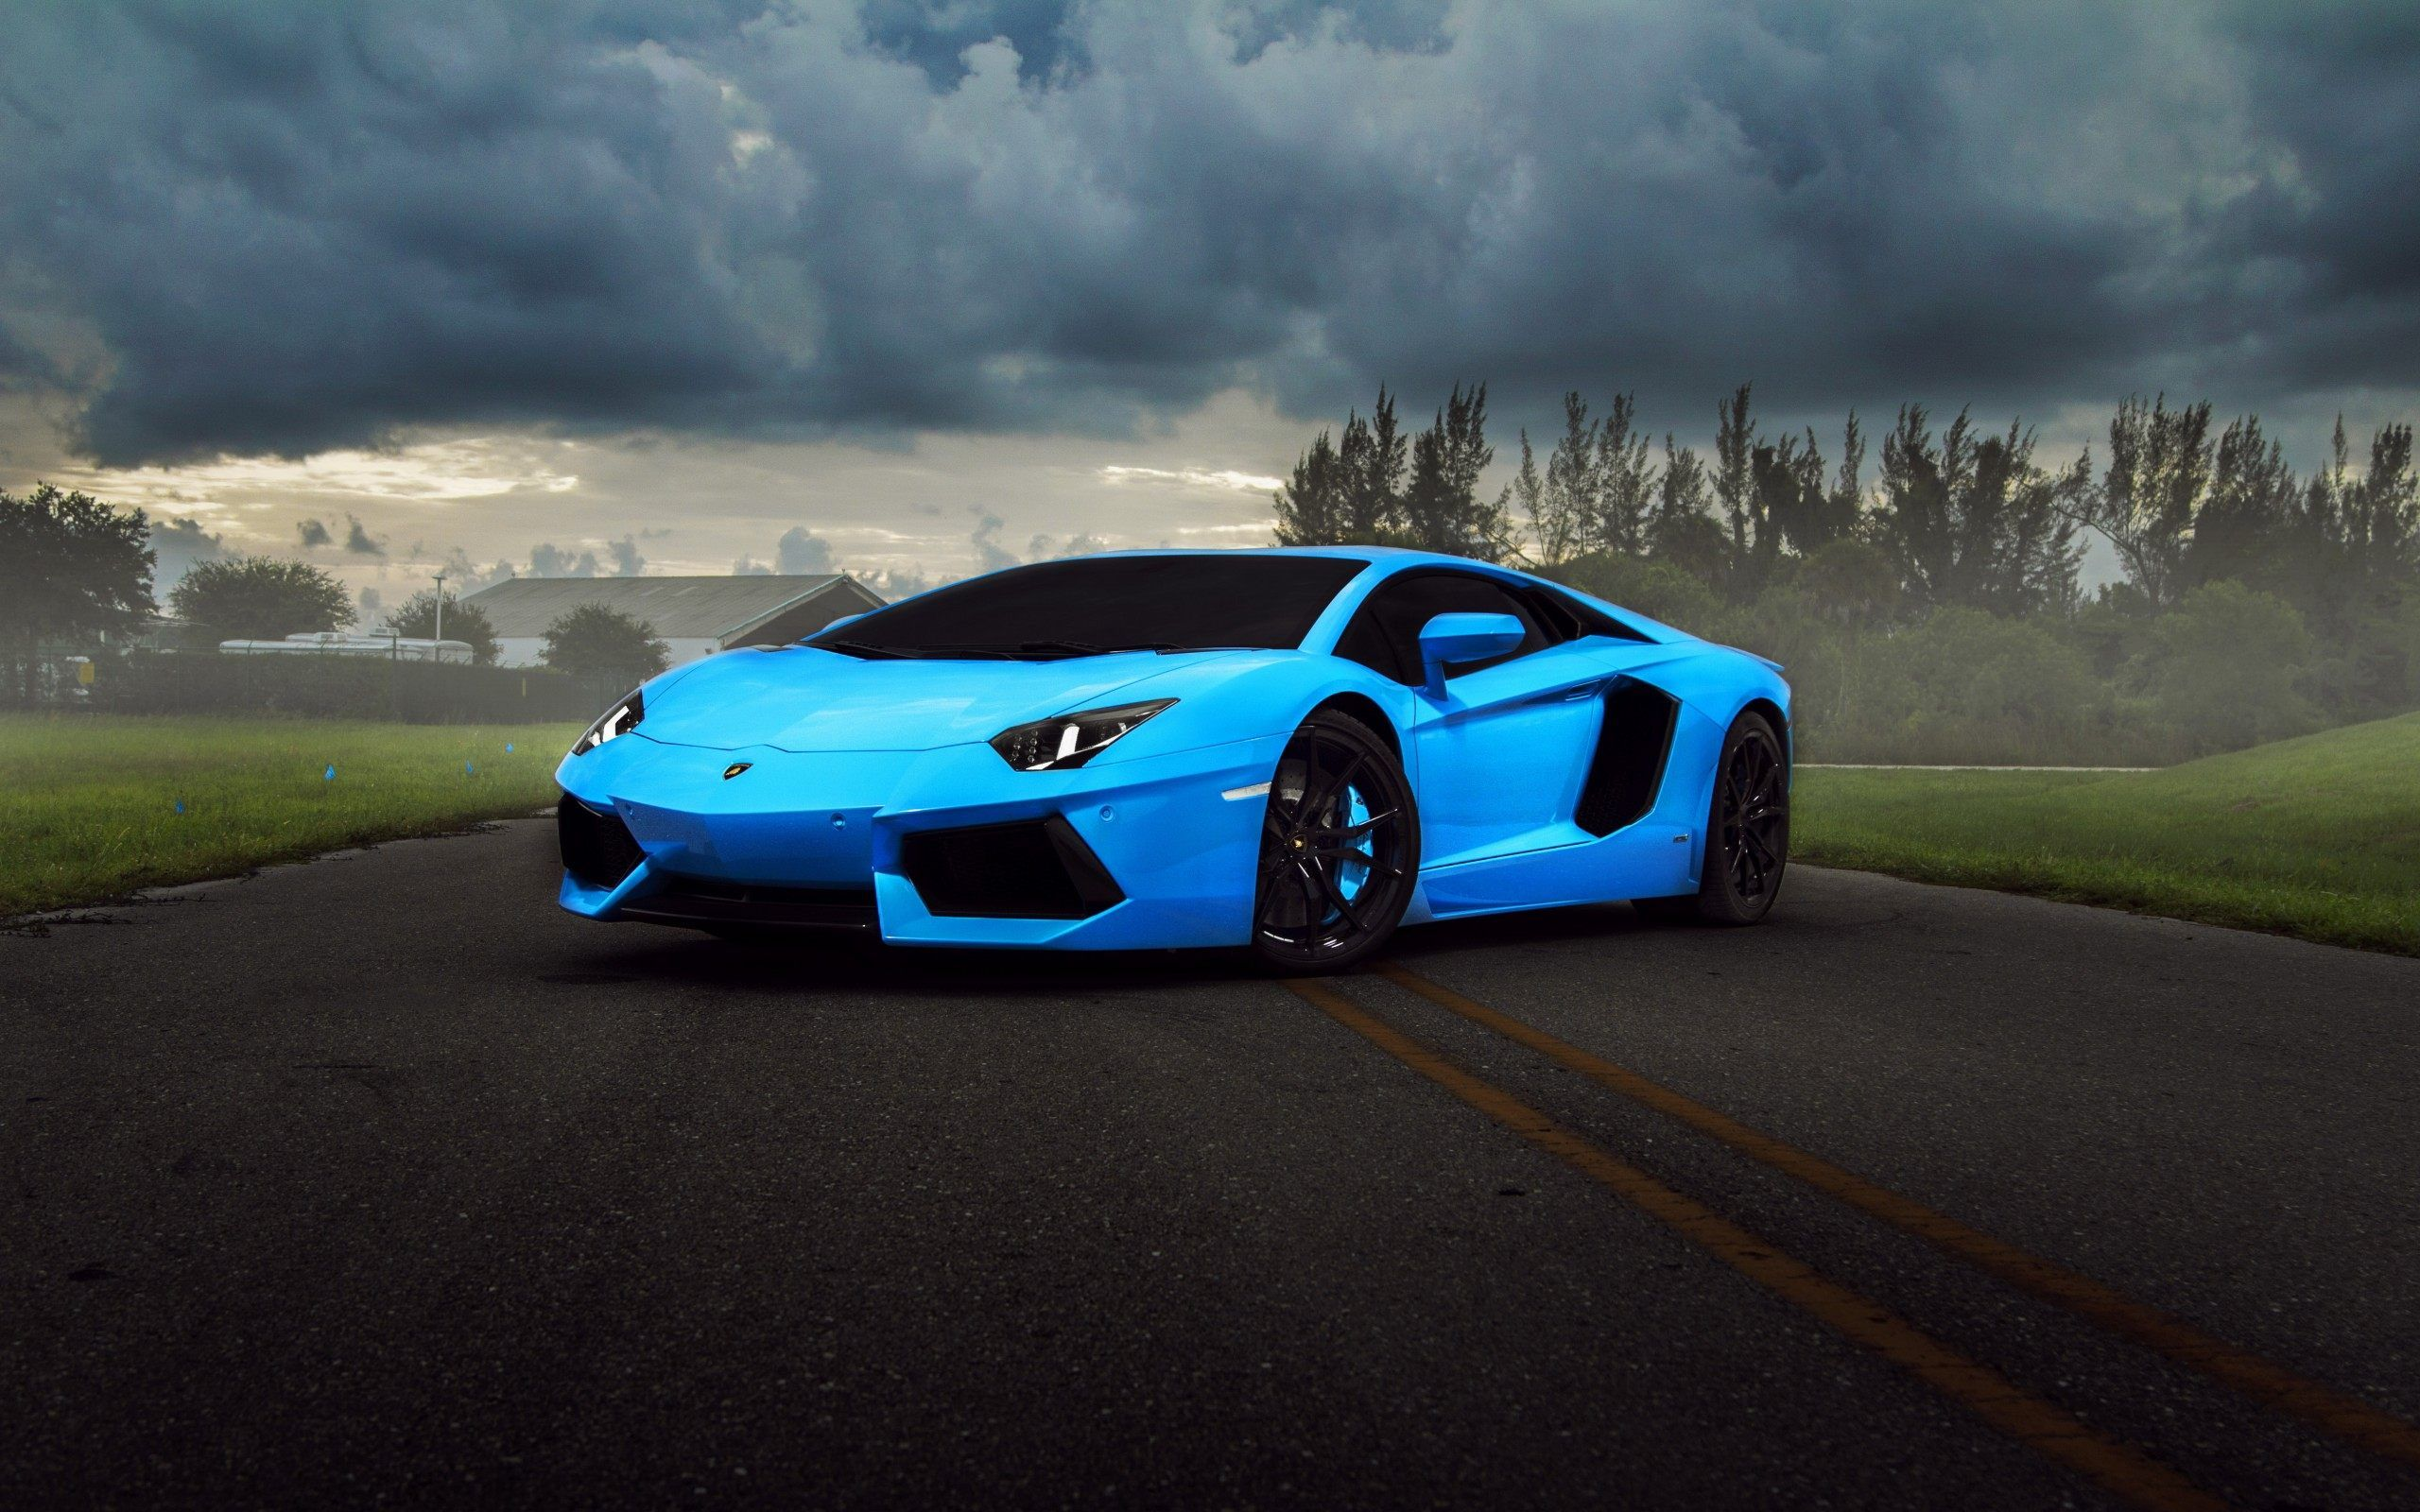 31 Ice Blue Lambo Wallpapers On Wallpapersafari